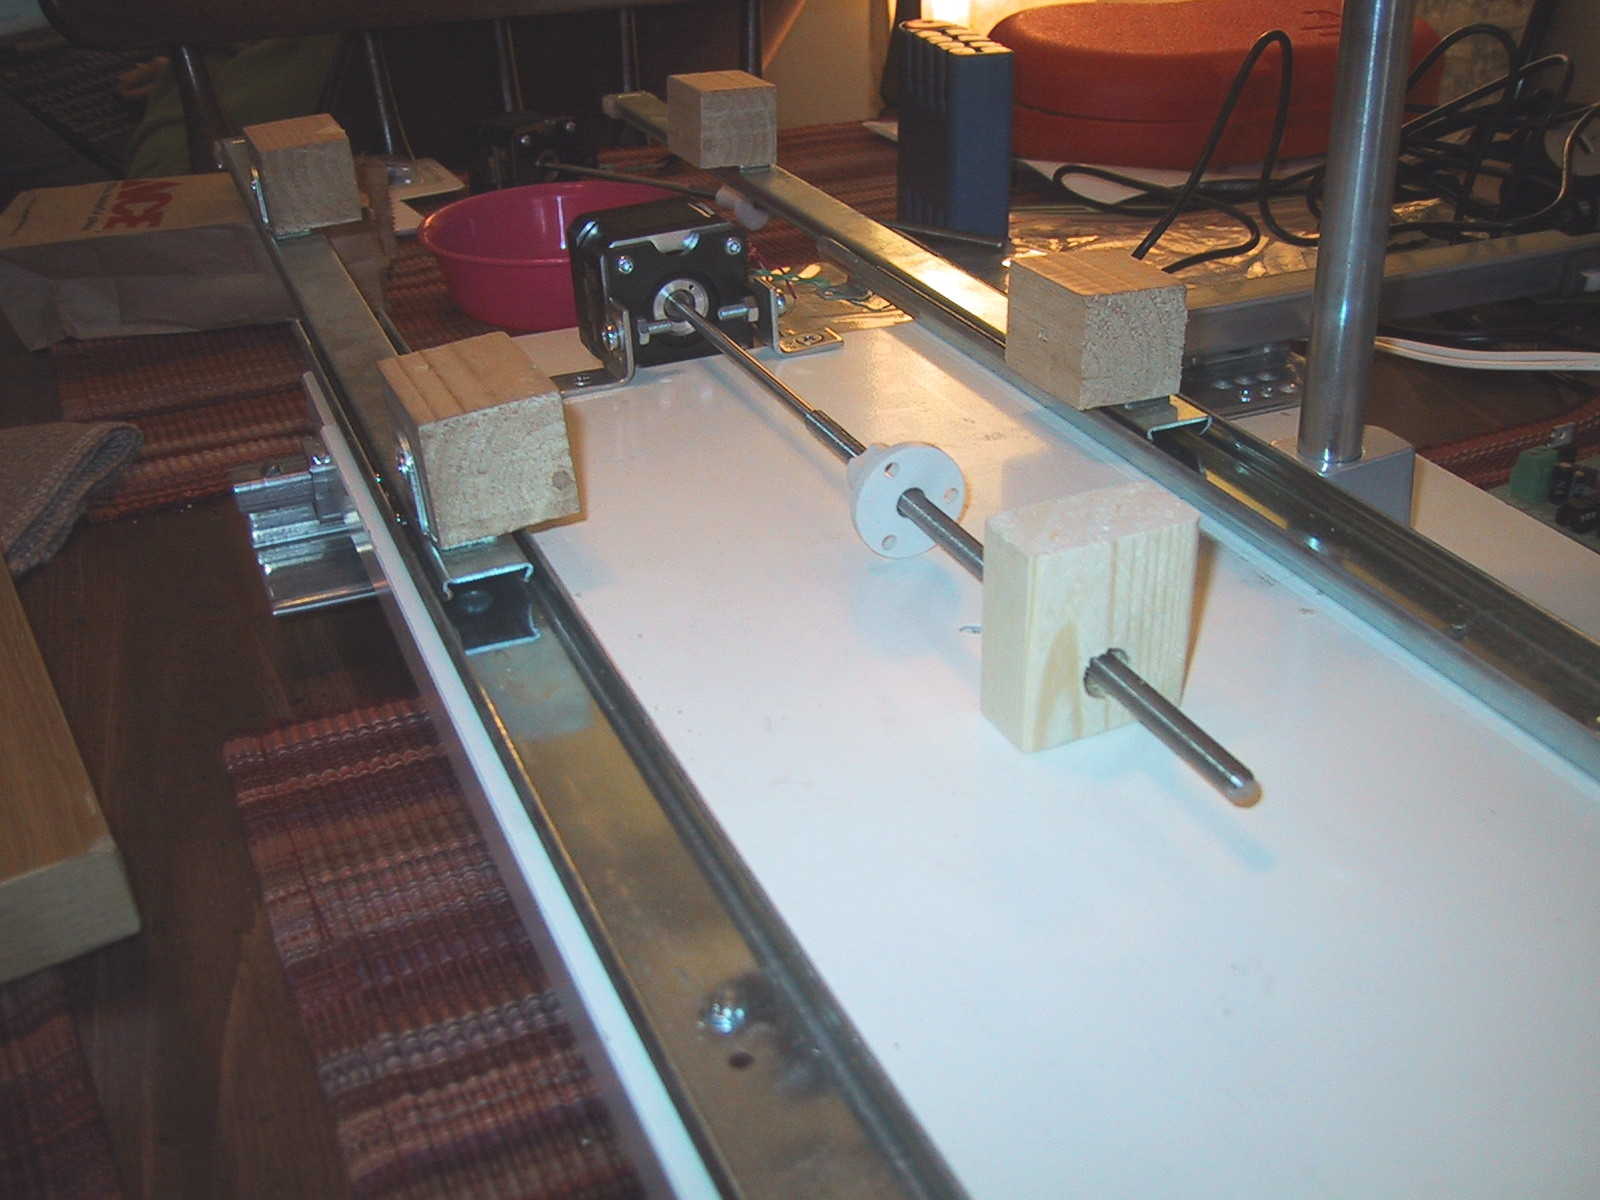 Used Cnc Router >> X/Y Table Motion, or 2.5 axis CNC router | Jay's Technical Talk